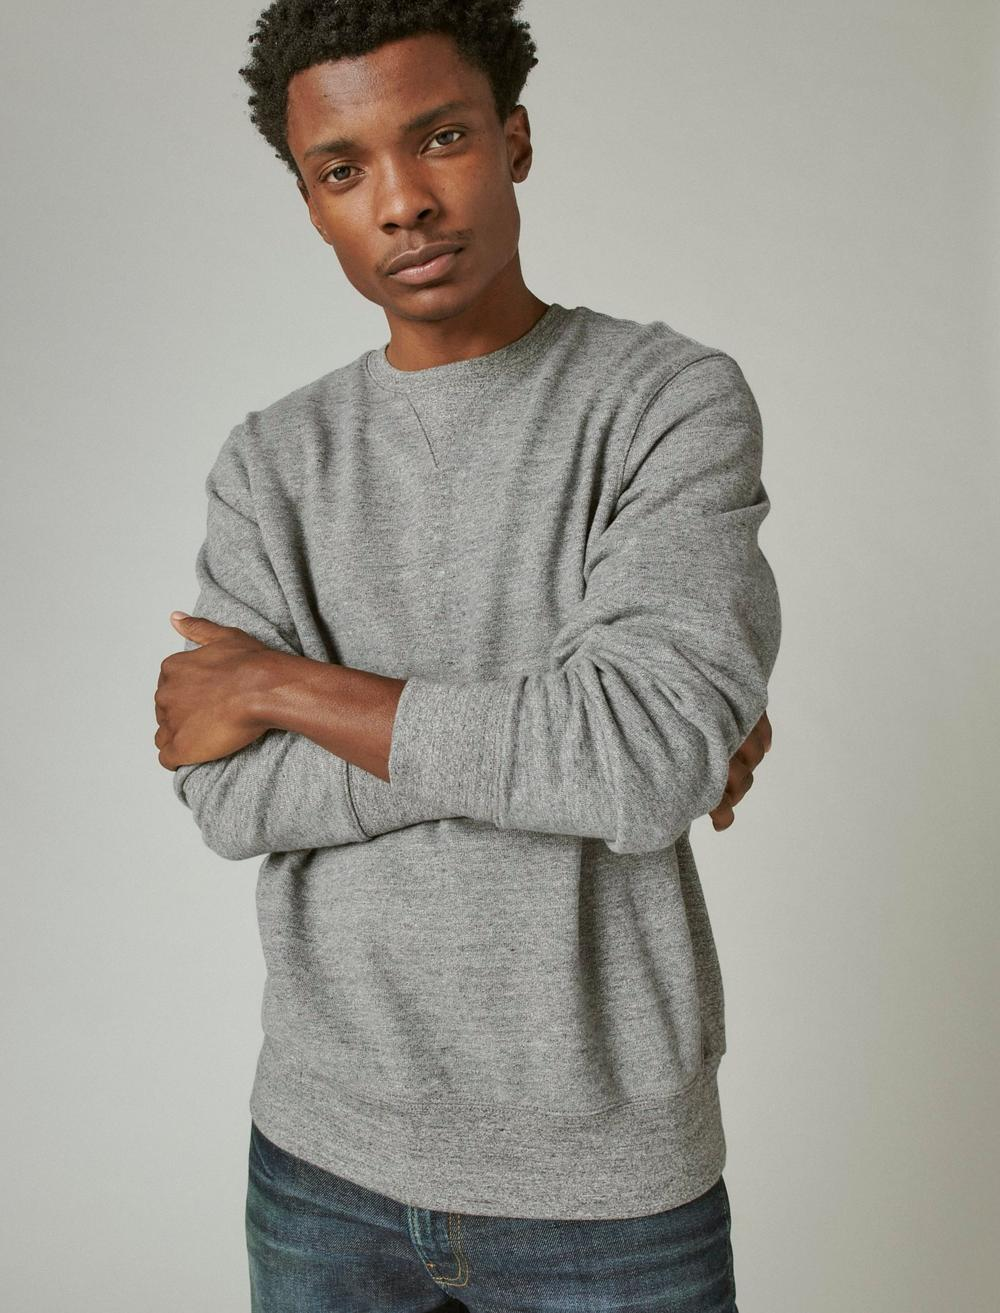 SUEDED FRENCH TERRY CREW SWEATSHIRT, image 1